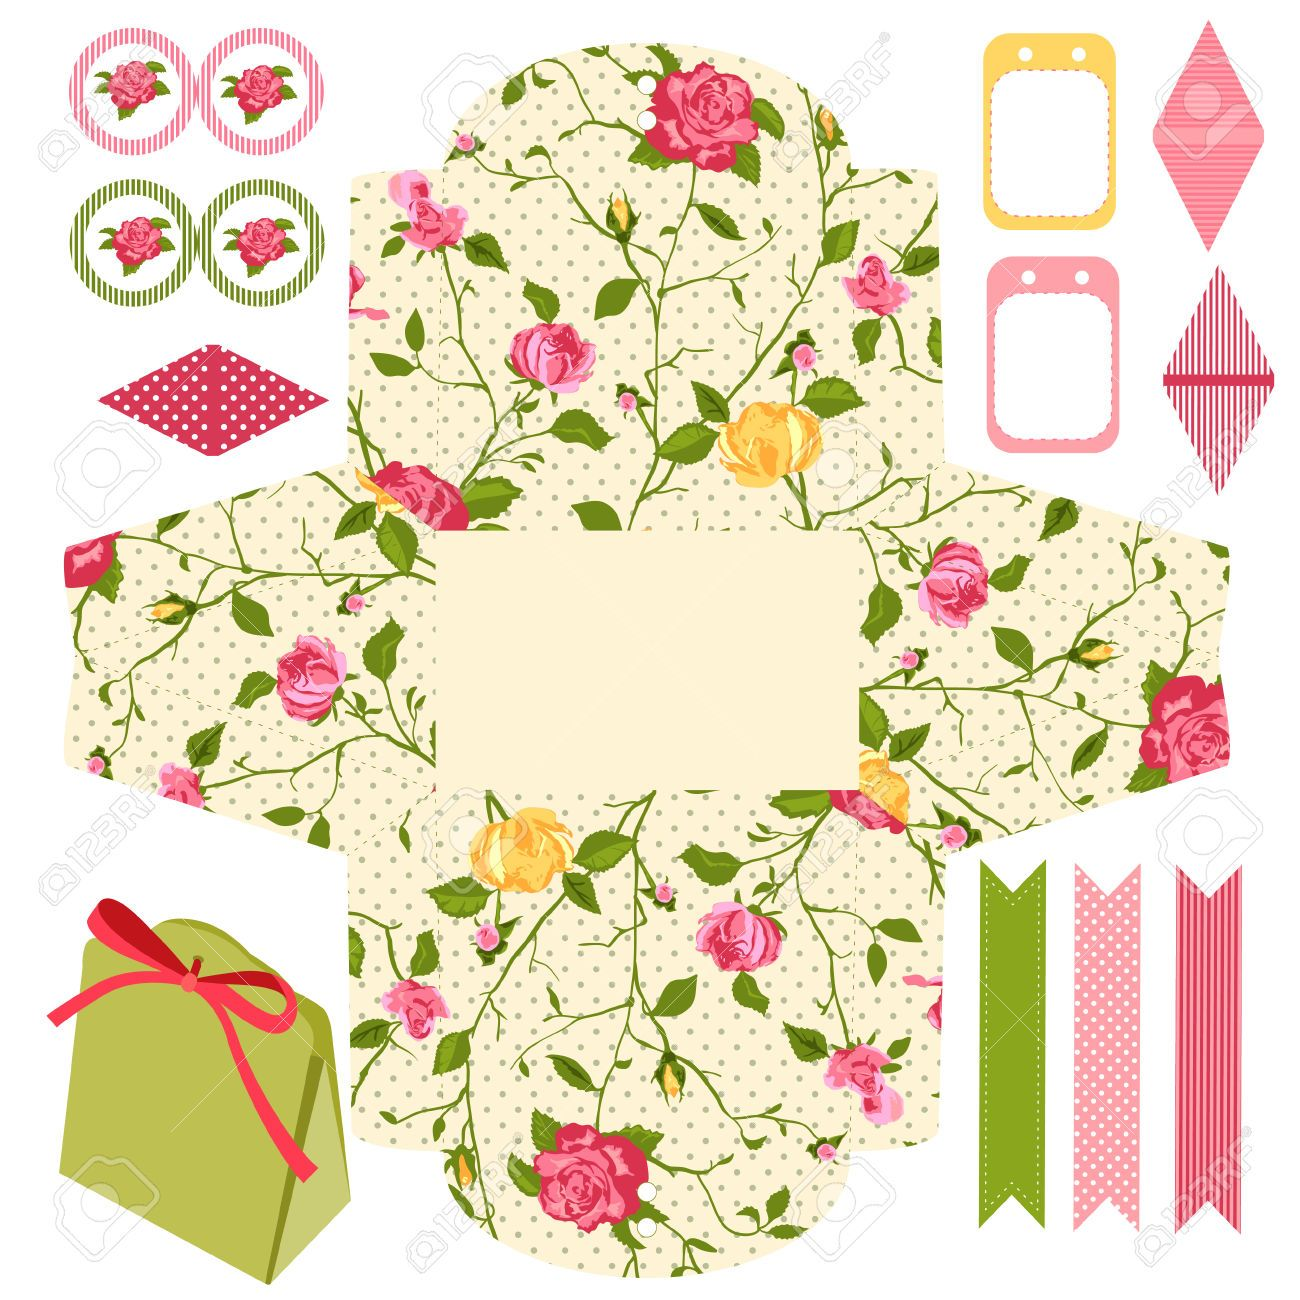 31501933-Party-Geschenk-Box-Vorlage-Abstract-floral-Shabby-Chic ...